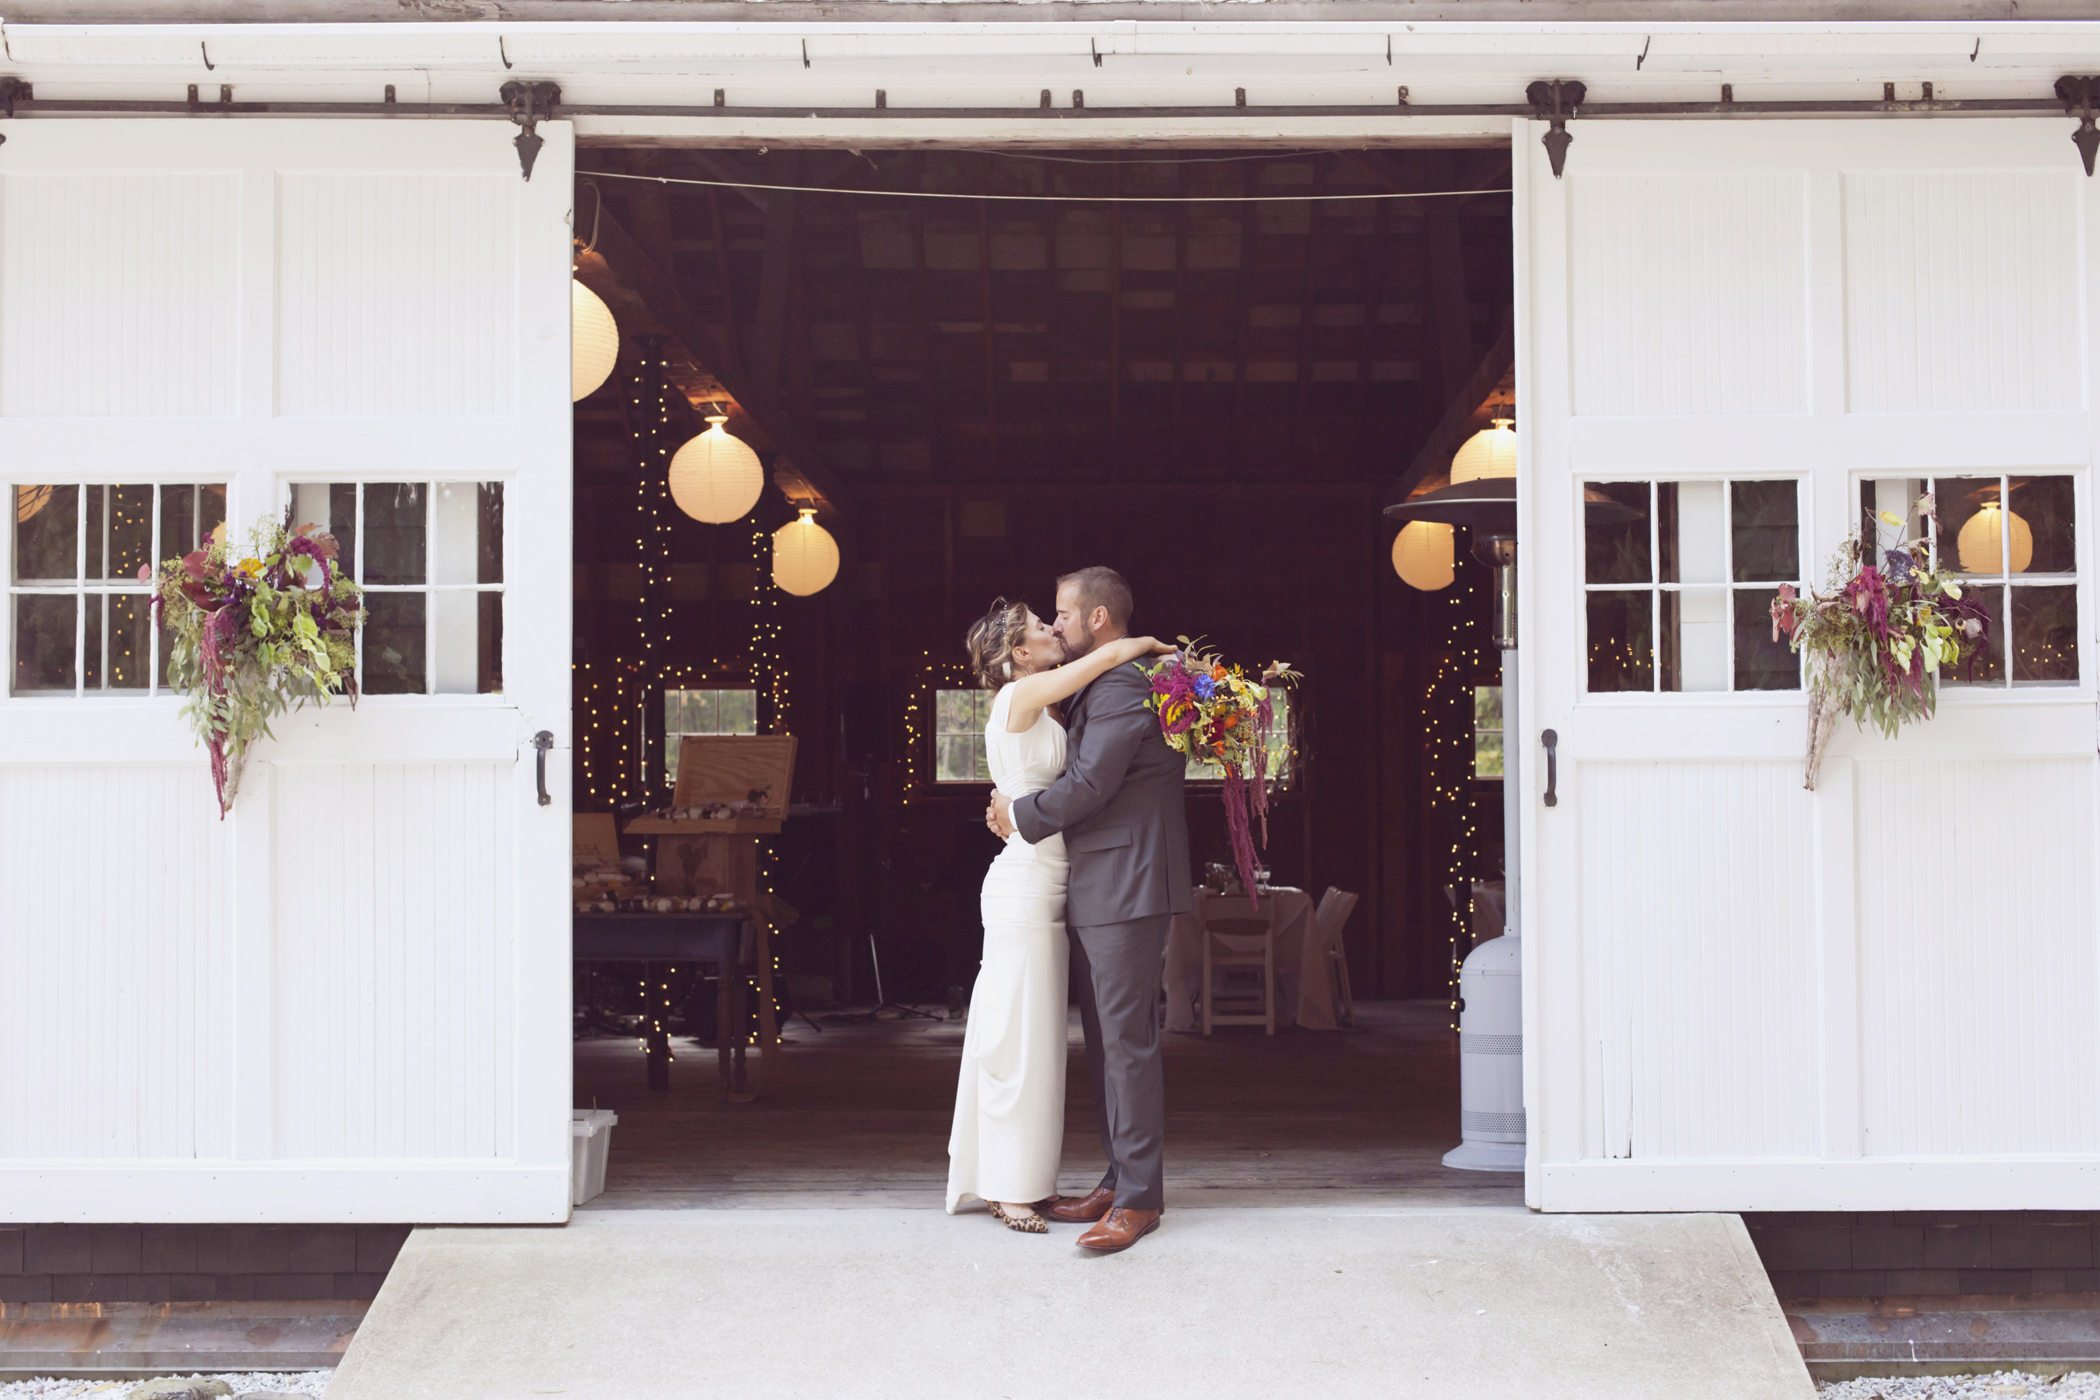 15 New England wedding venues, from beachy to industrial